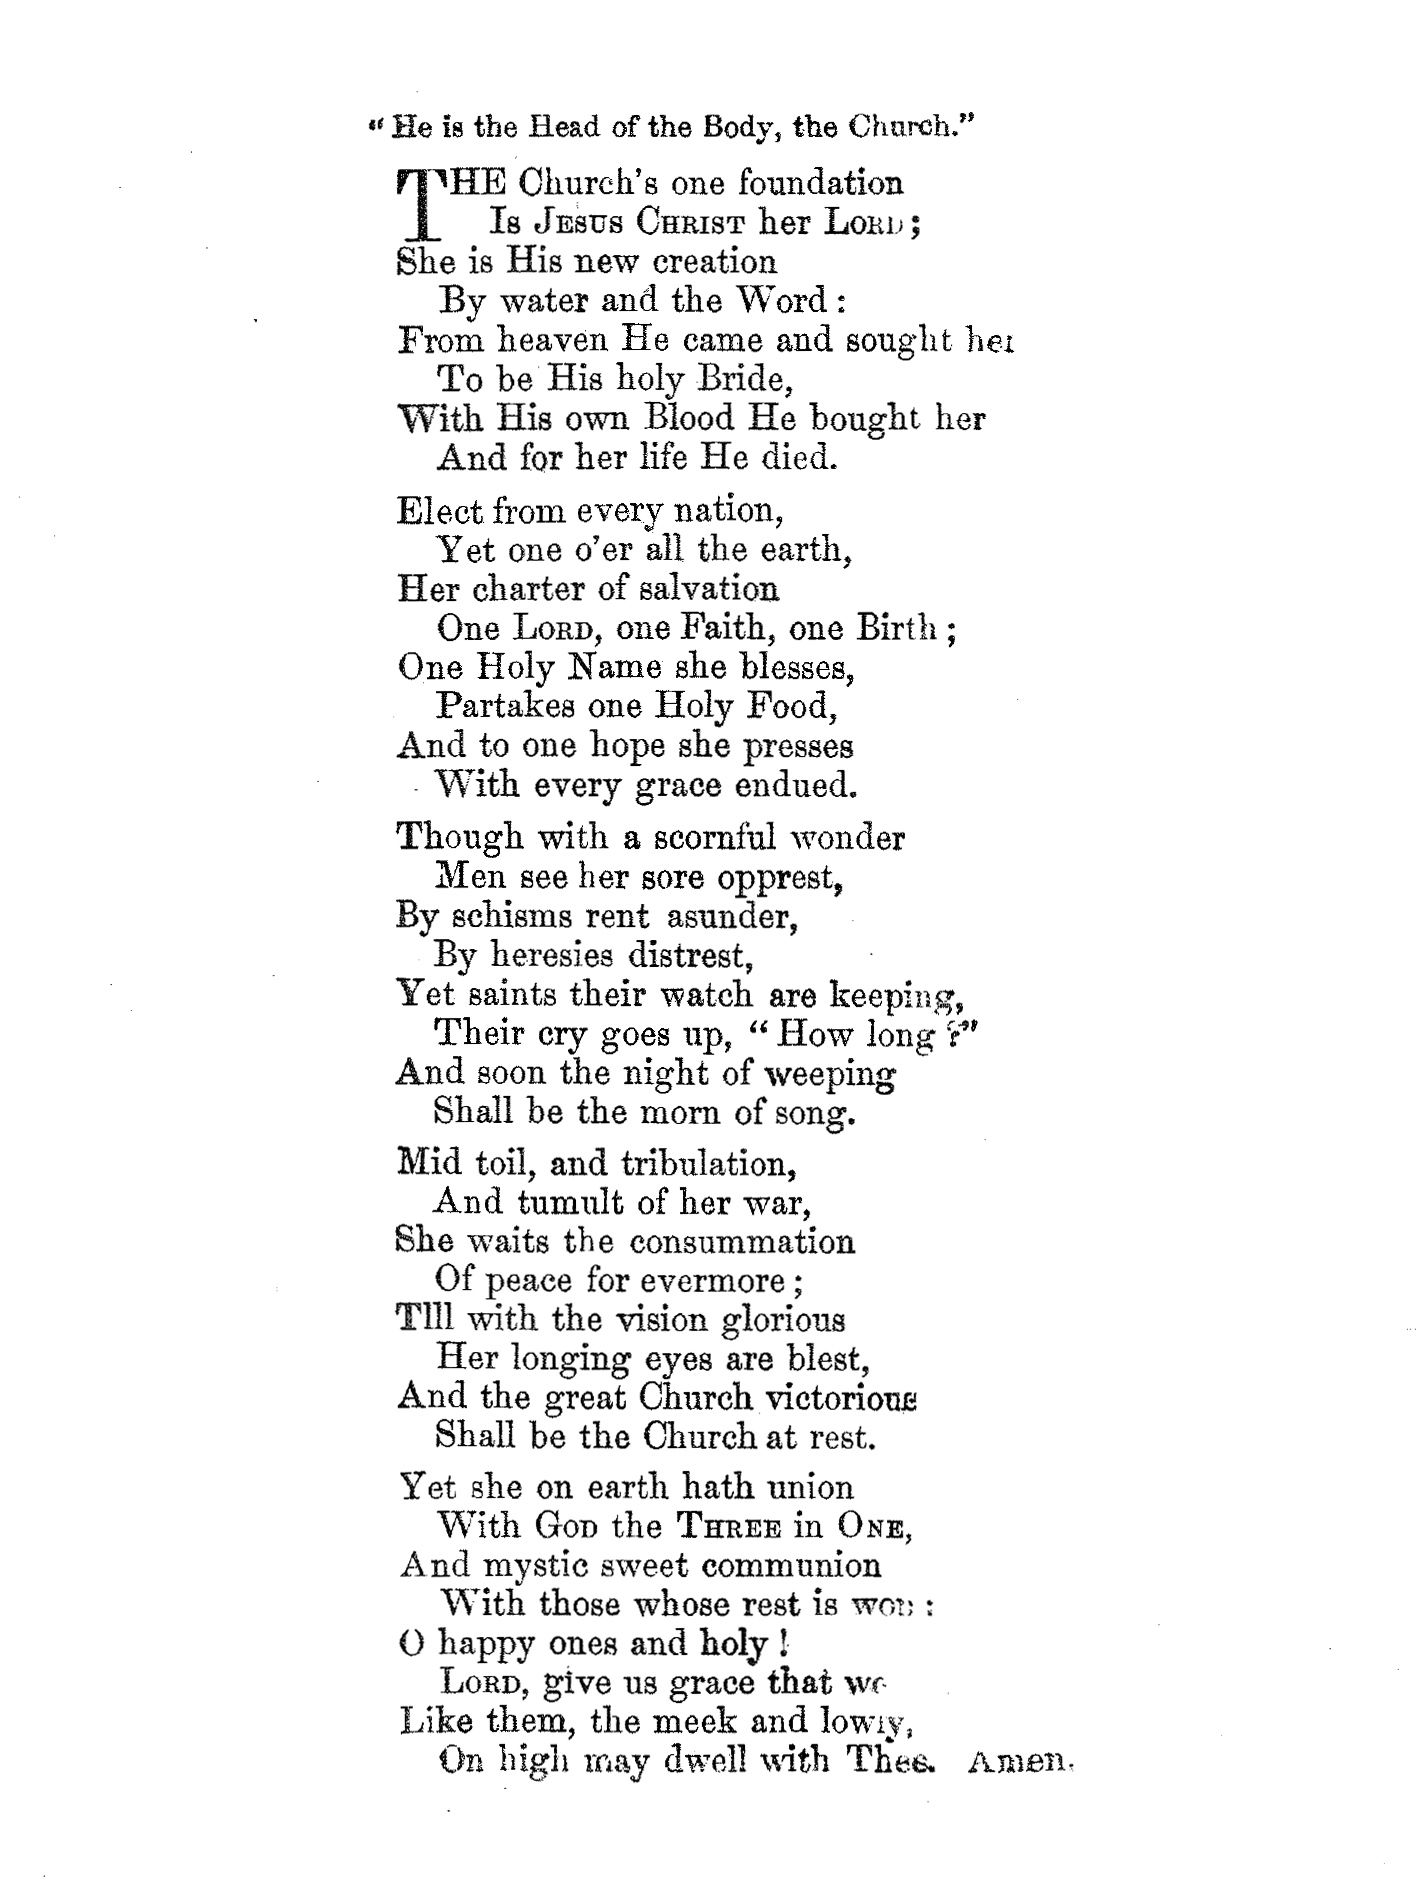 Fig. 2.   Hymns Ancient & Modern, with Appendix  (London: William Clowes & Sons, 1868).